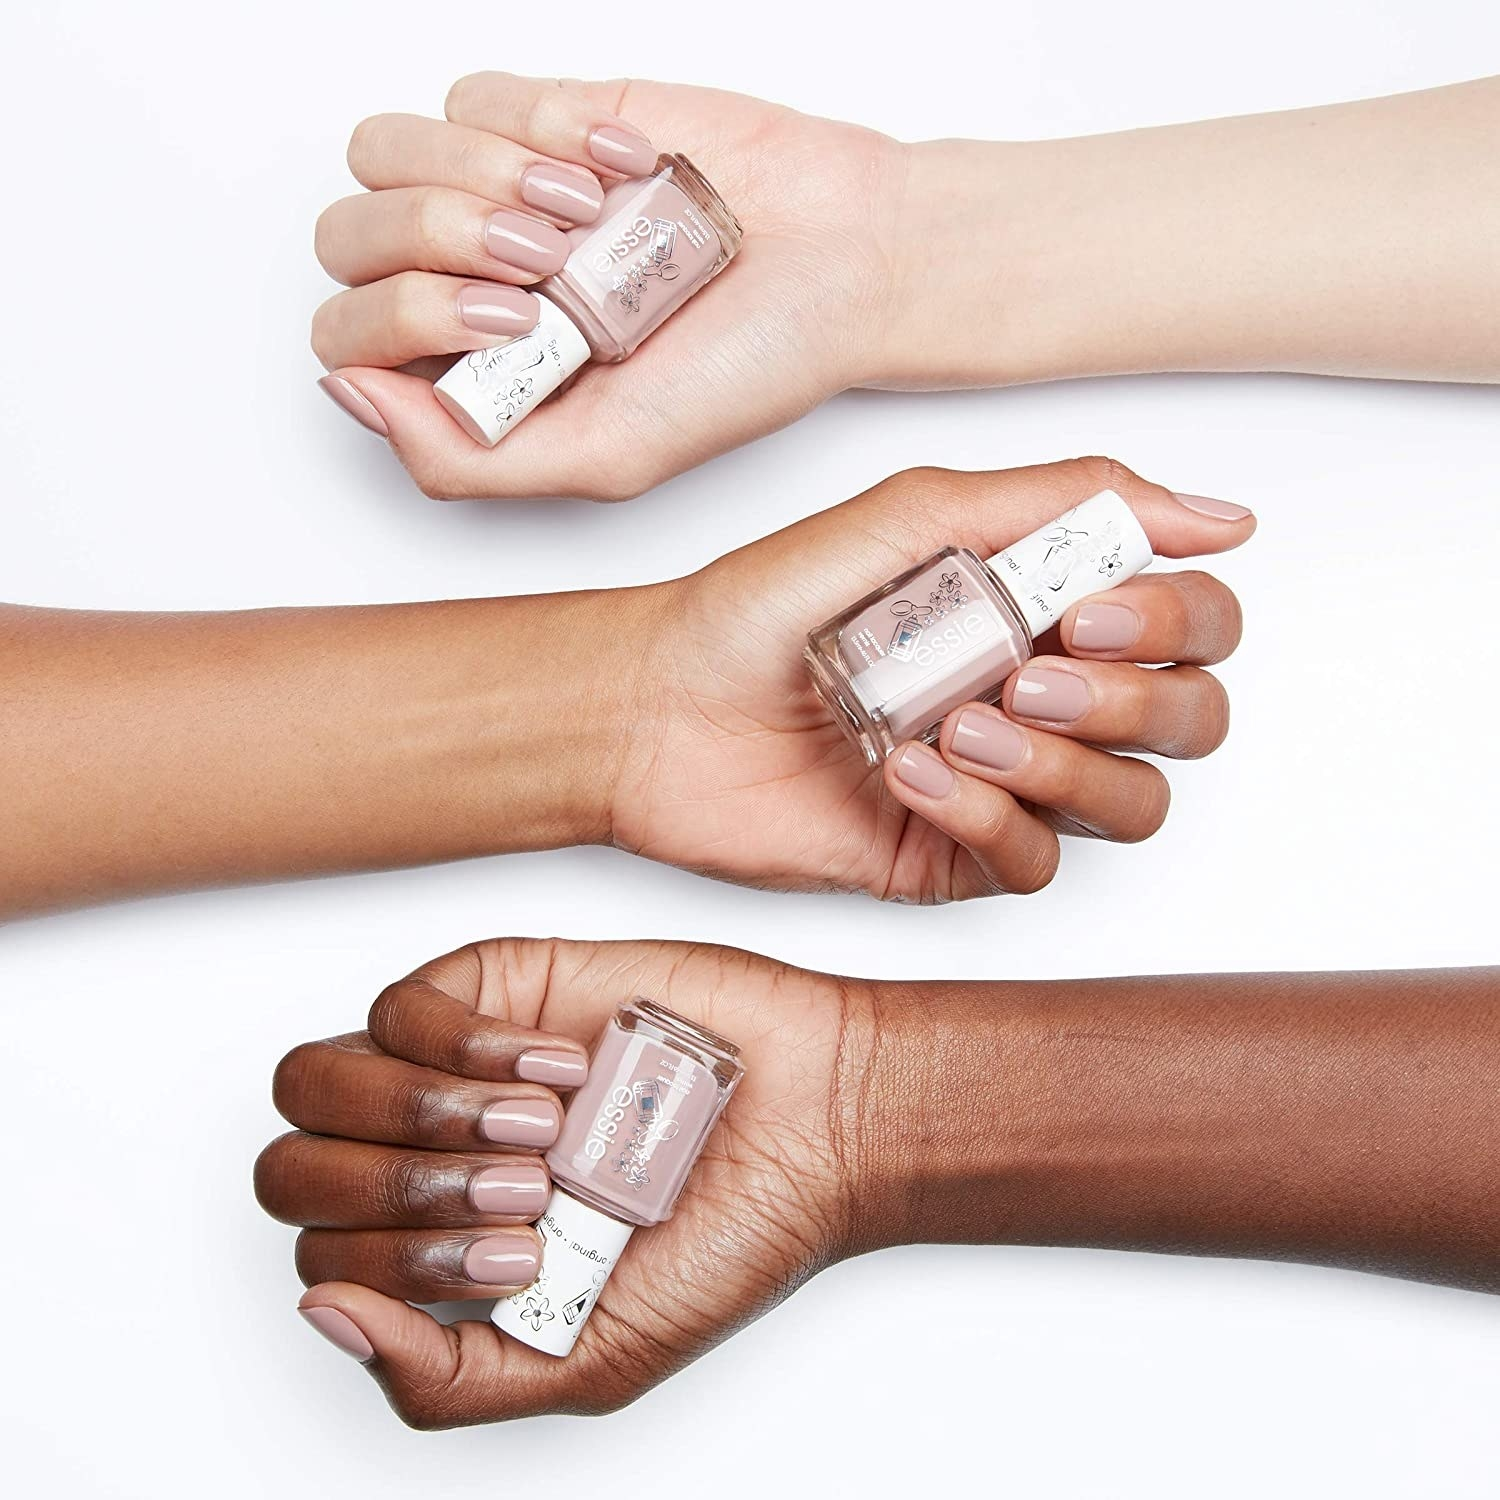 A trio of hands in varying shades all holding the nail polish